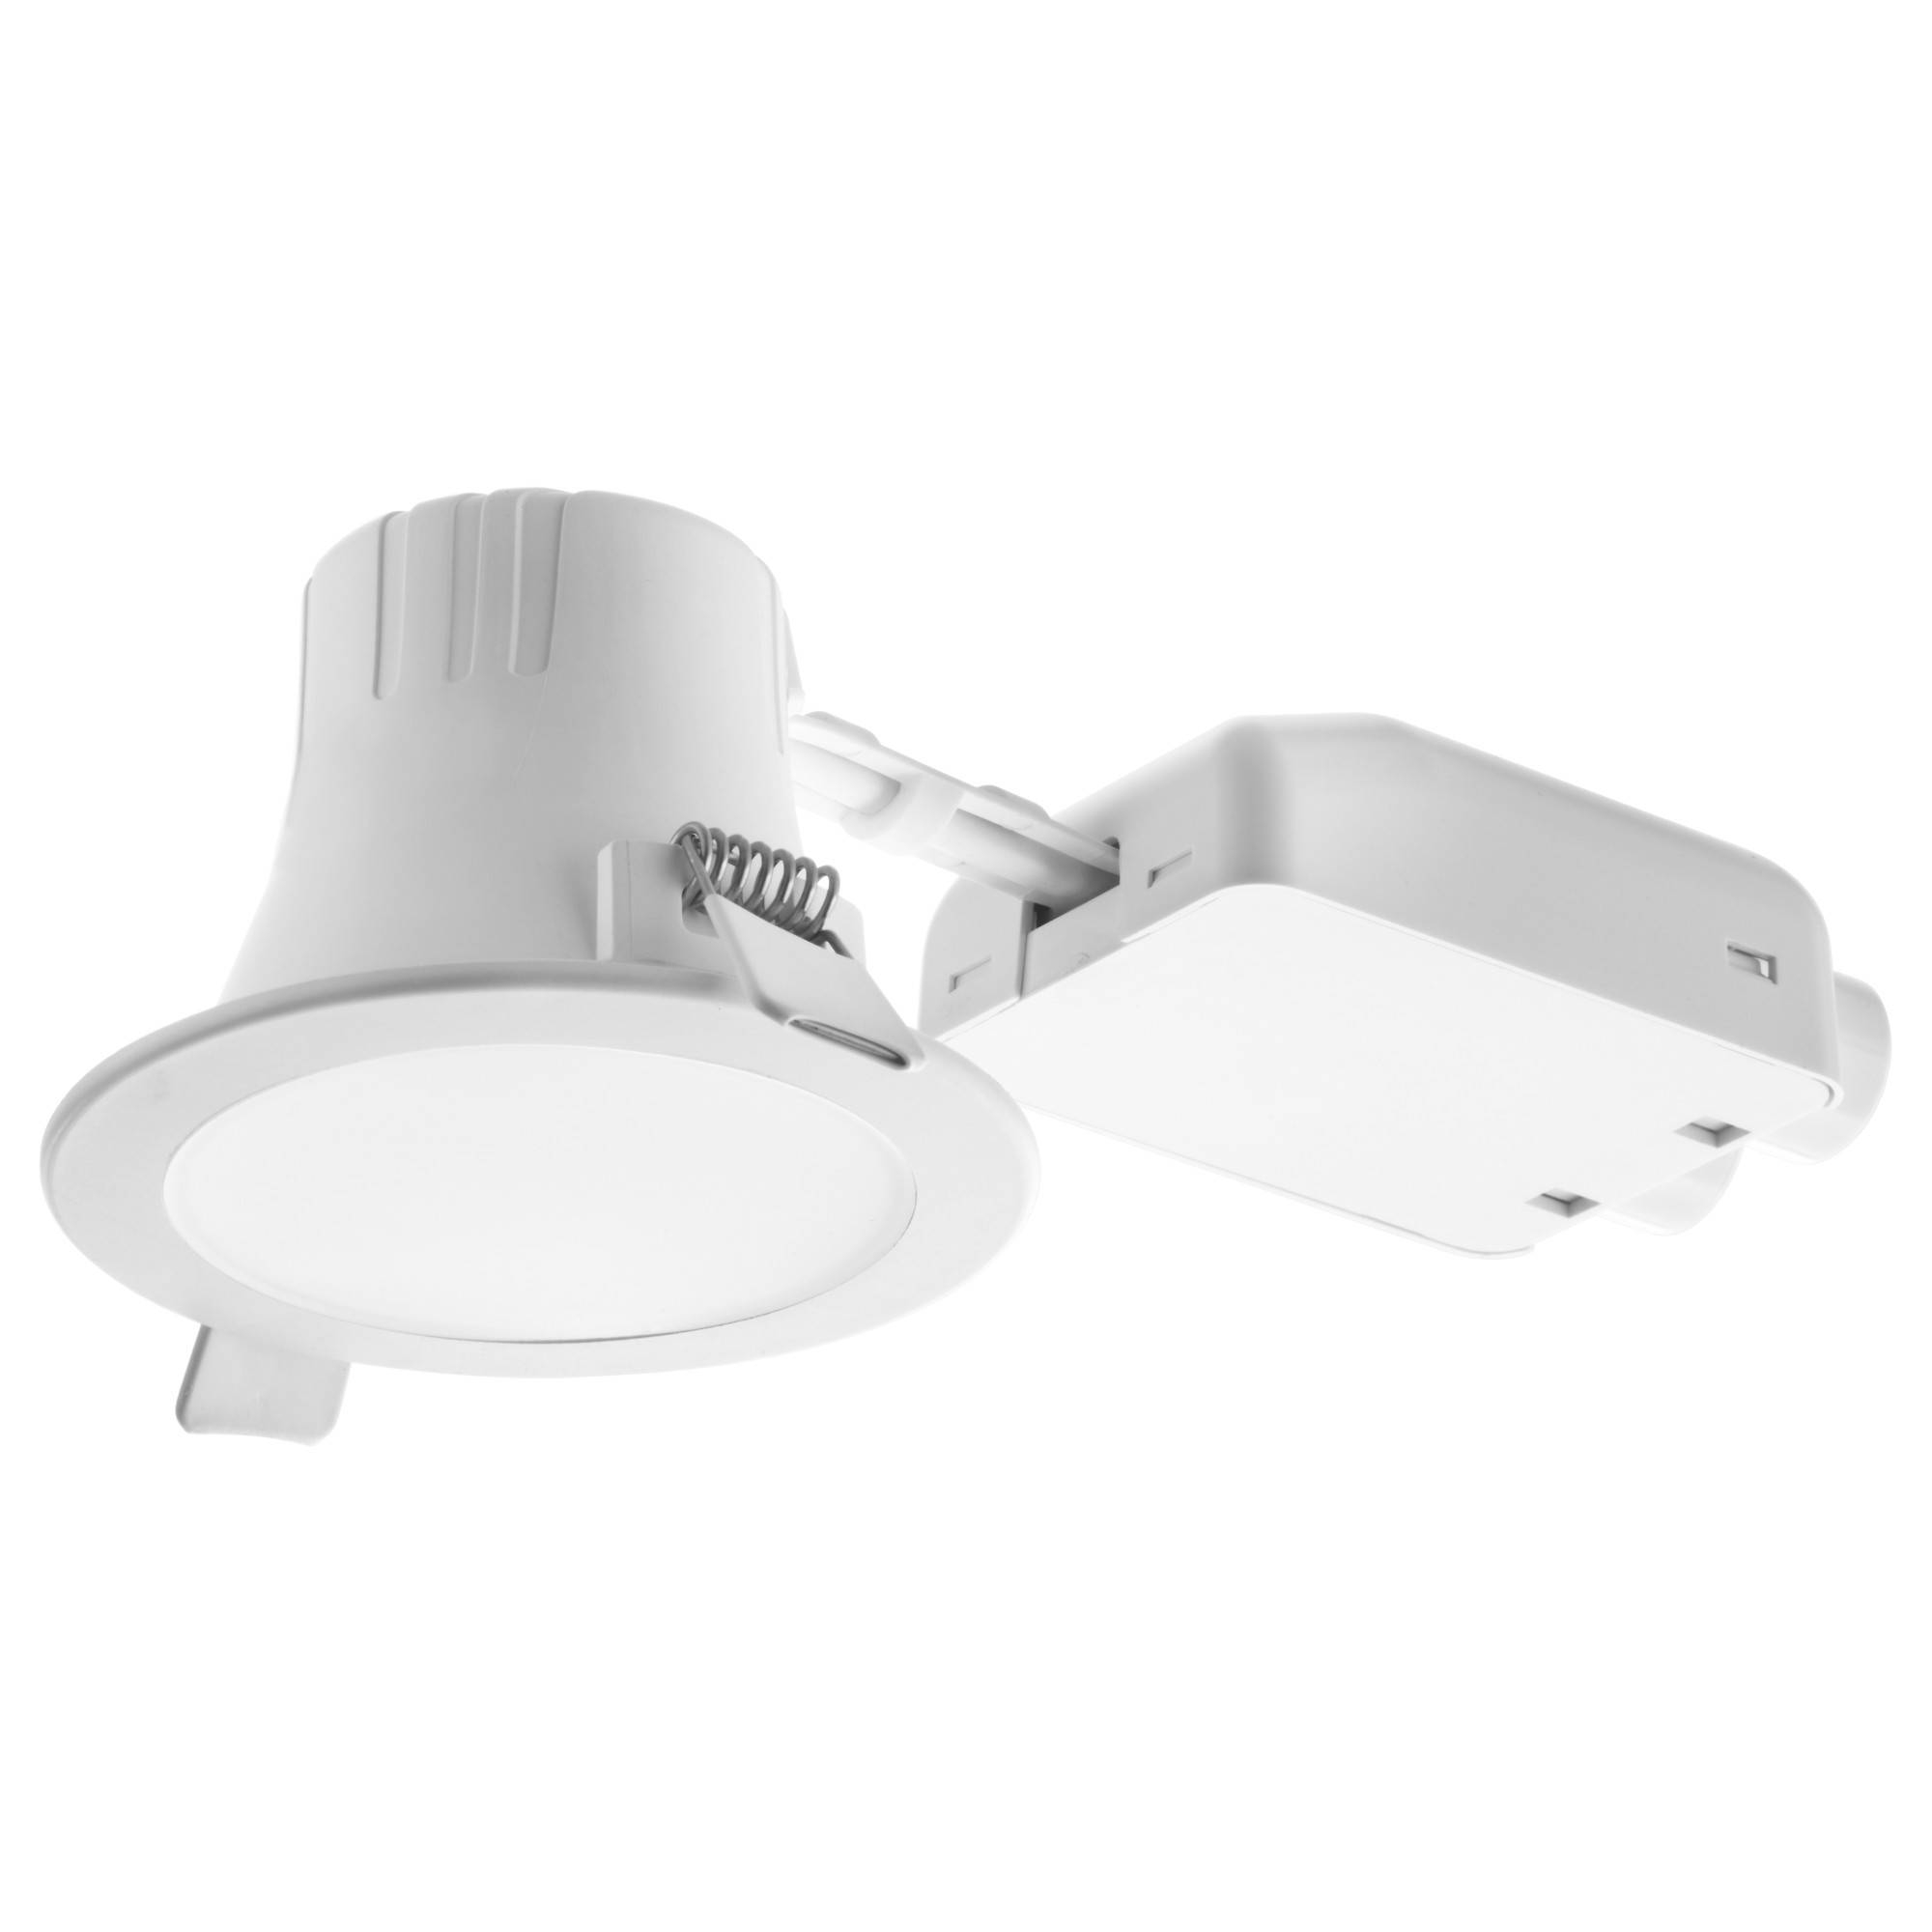 Lakene Led Recessed Spotlight Opal White - Ikea regarding Ikea Recessed Lighting (Image 9 of 15)